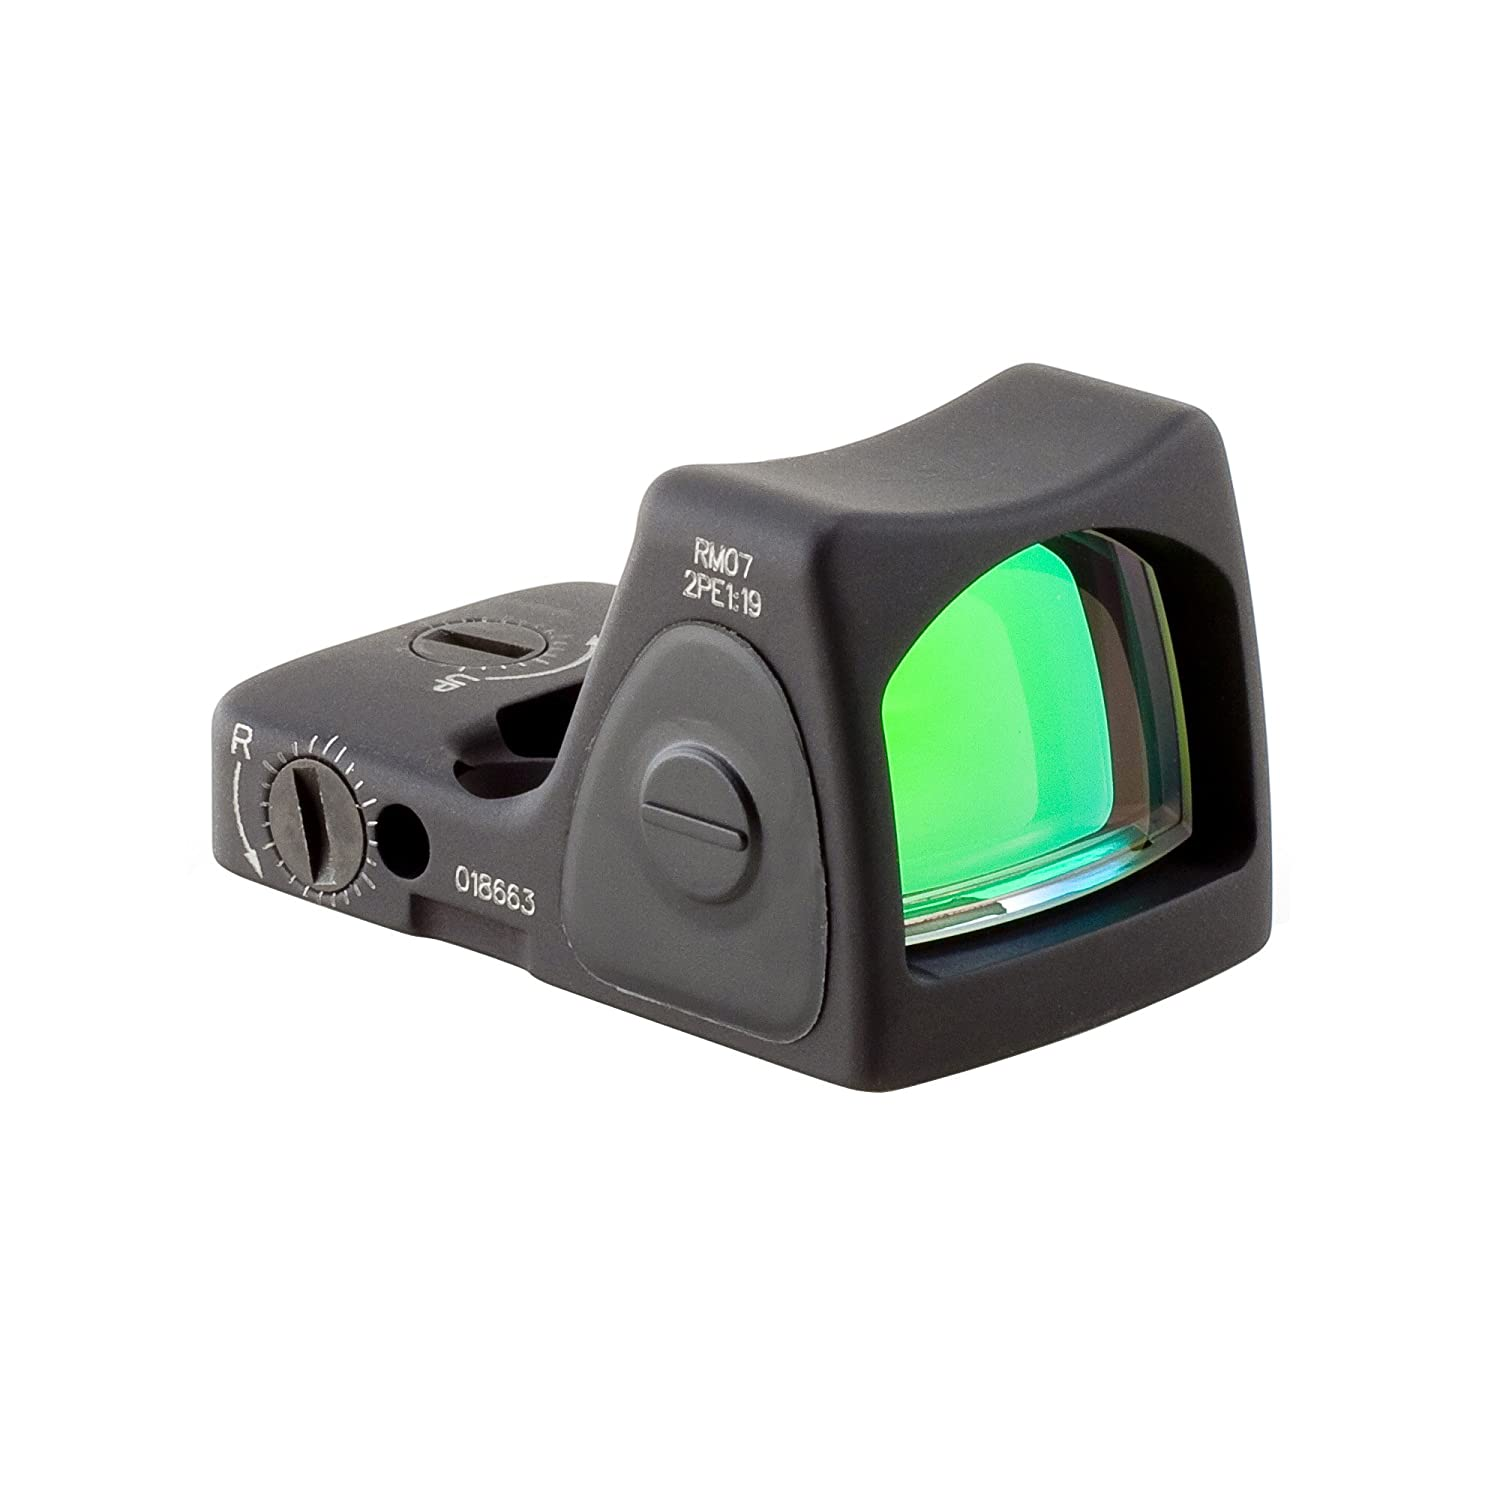 2. RMR Type 2 Adjustable LED Sight - 6.5 MOA Red Dot